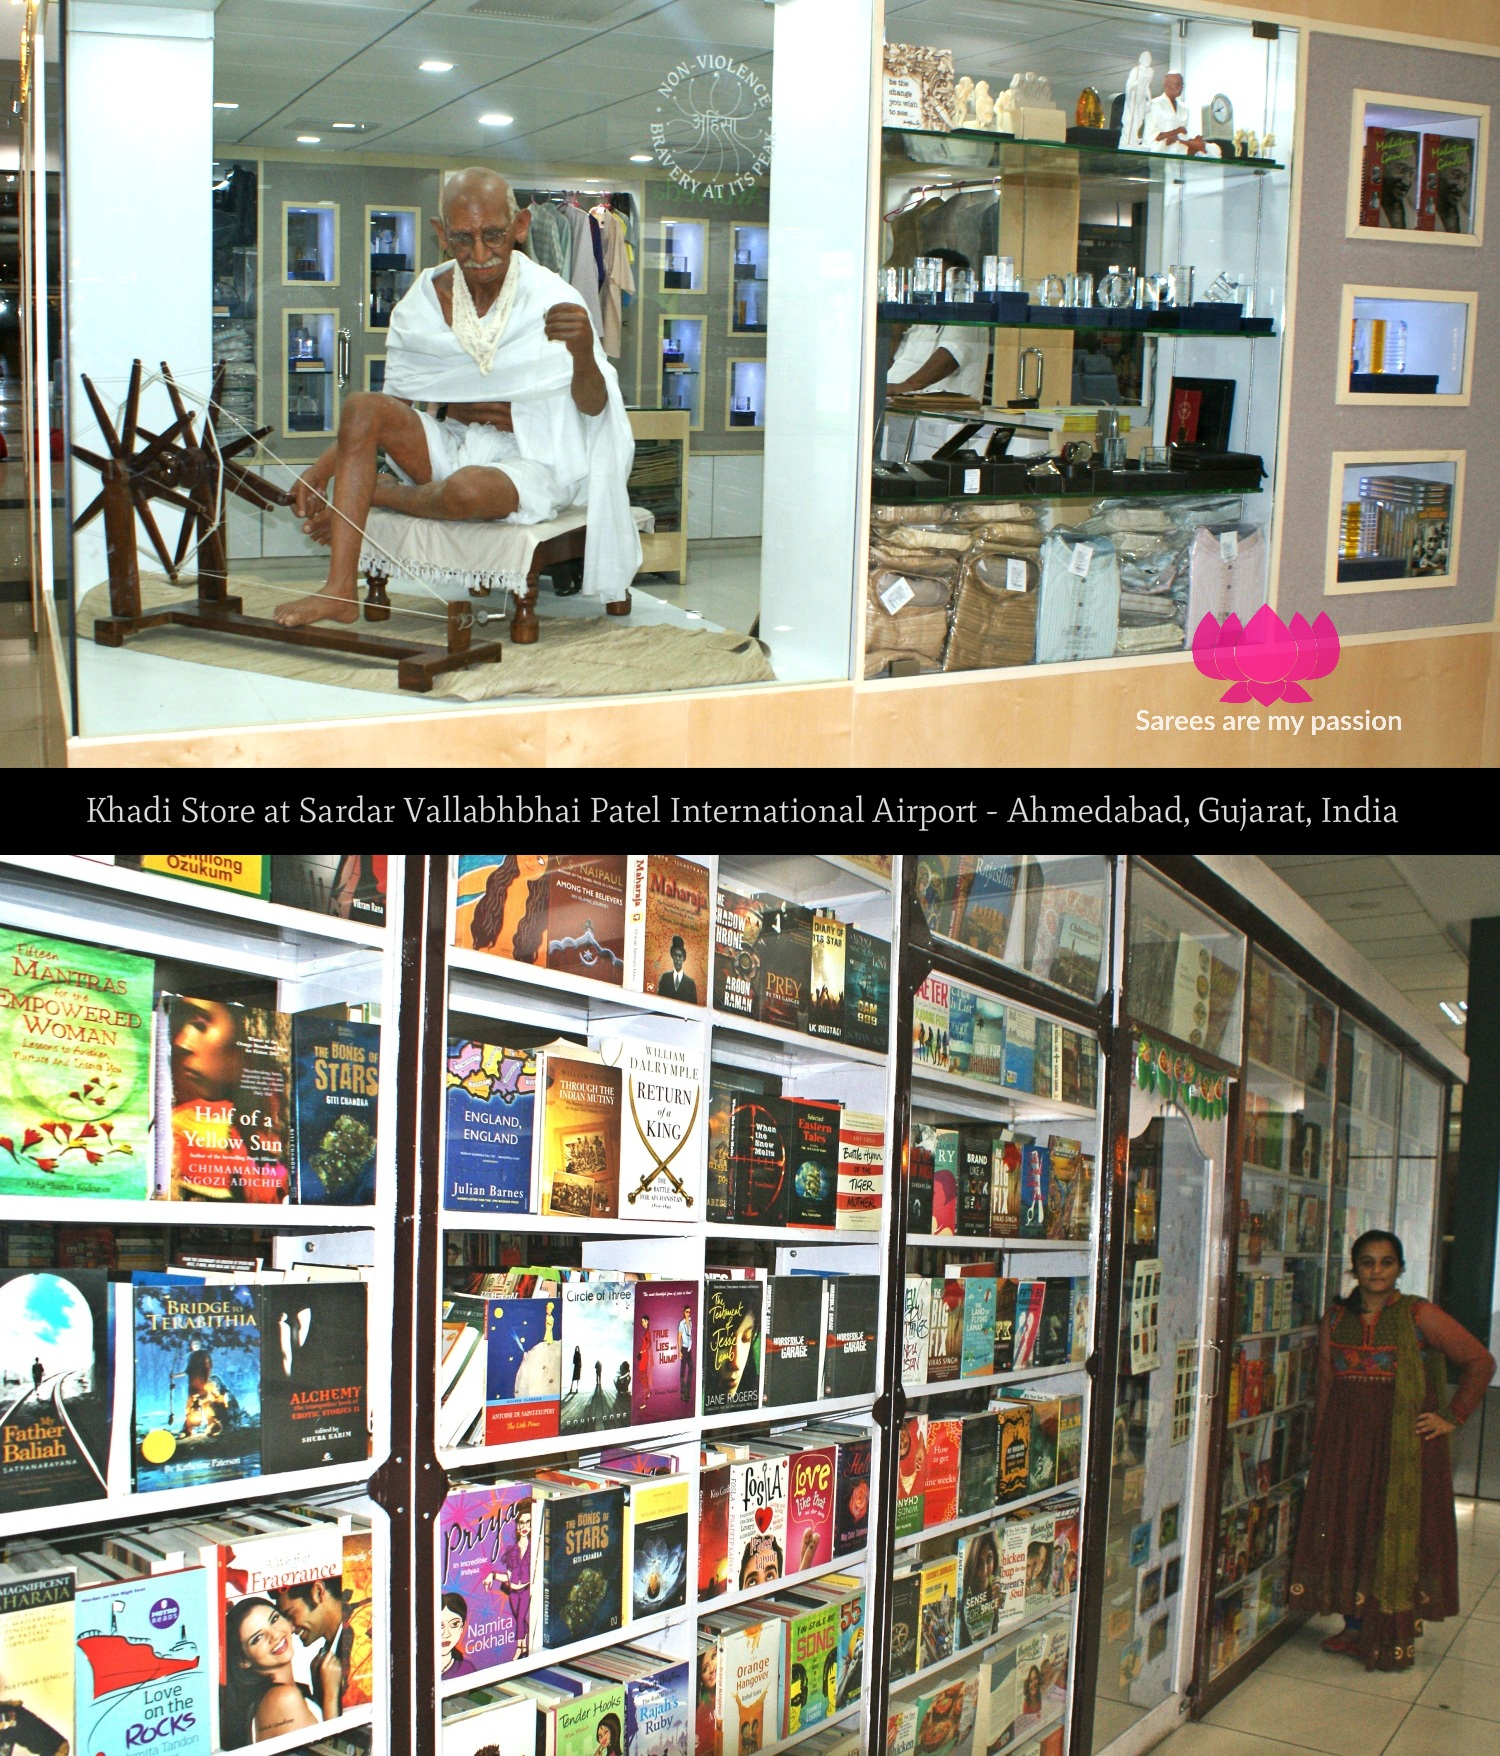 Khadi Store at Sardar Vallabhbhai Patel International Airport Ahmedabad Gujarat India - Sarees are my passion